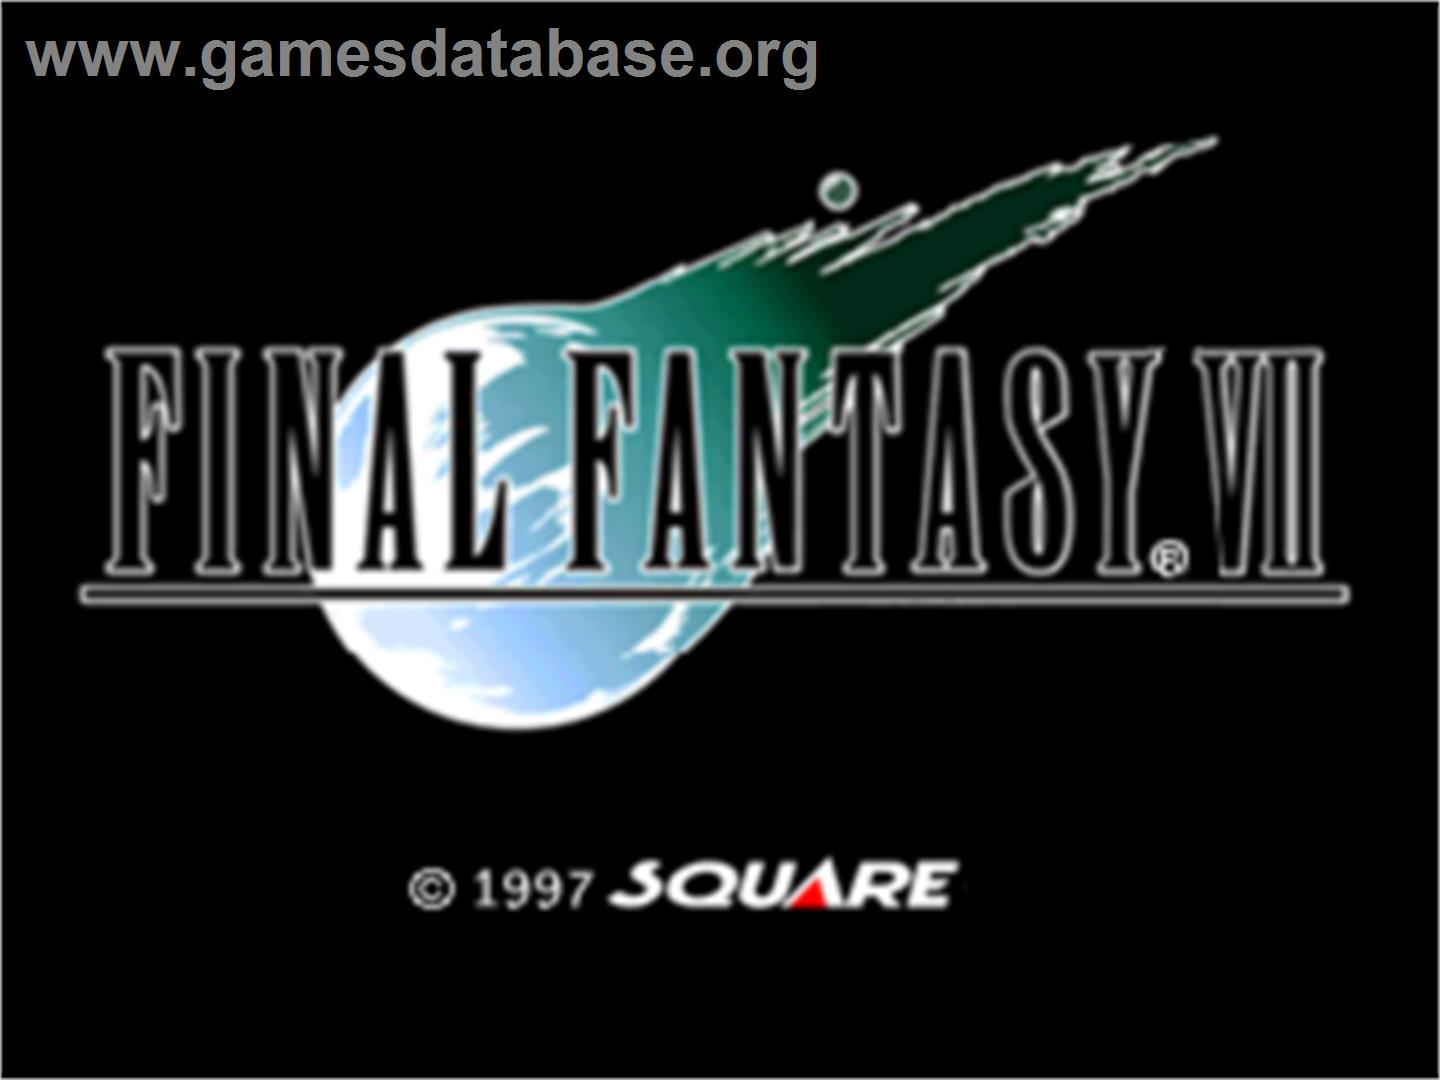 Final Fantasy VII - Sony Playstation - Artwork - Title Screen